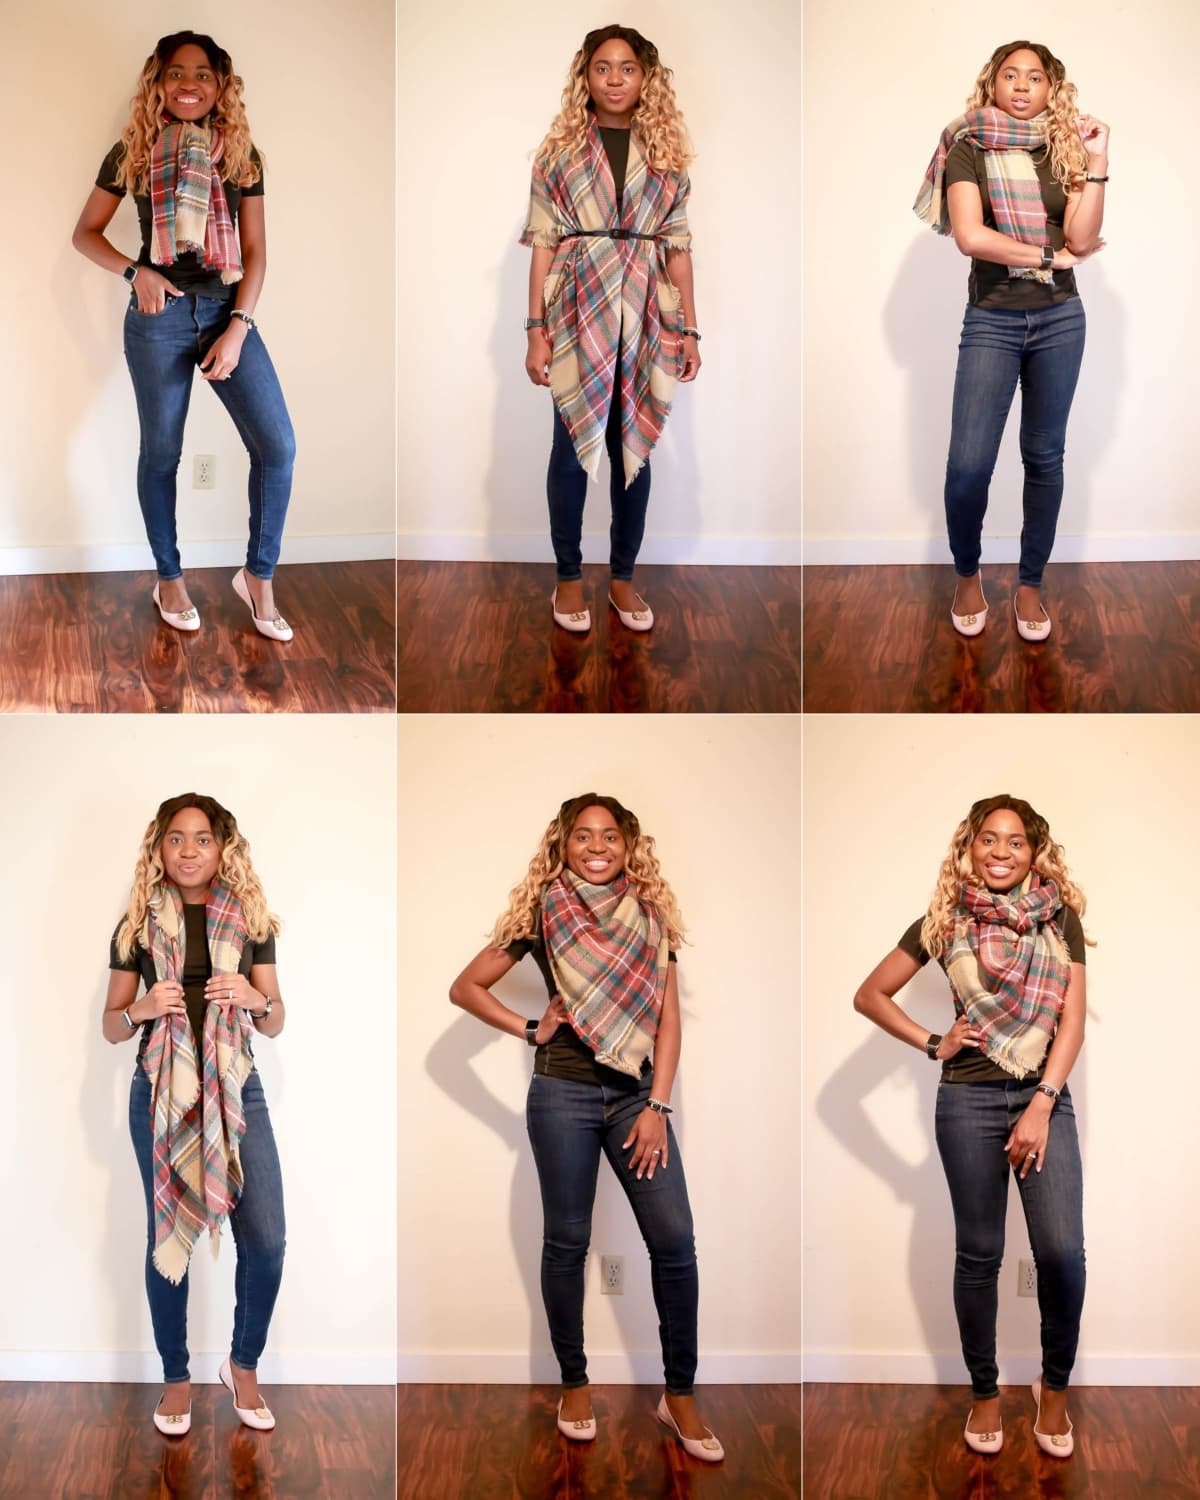 5 Easiest Ways To Wear A Scarf How To Tie A Blanket Scarf In 2021